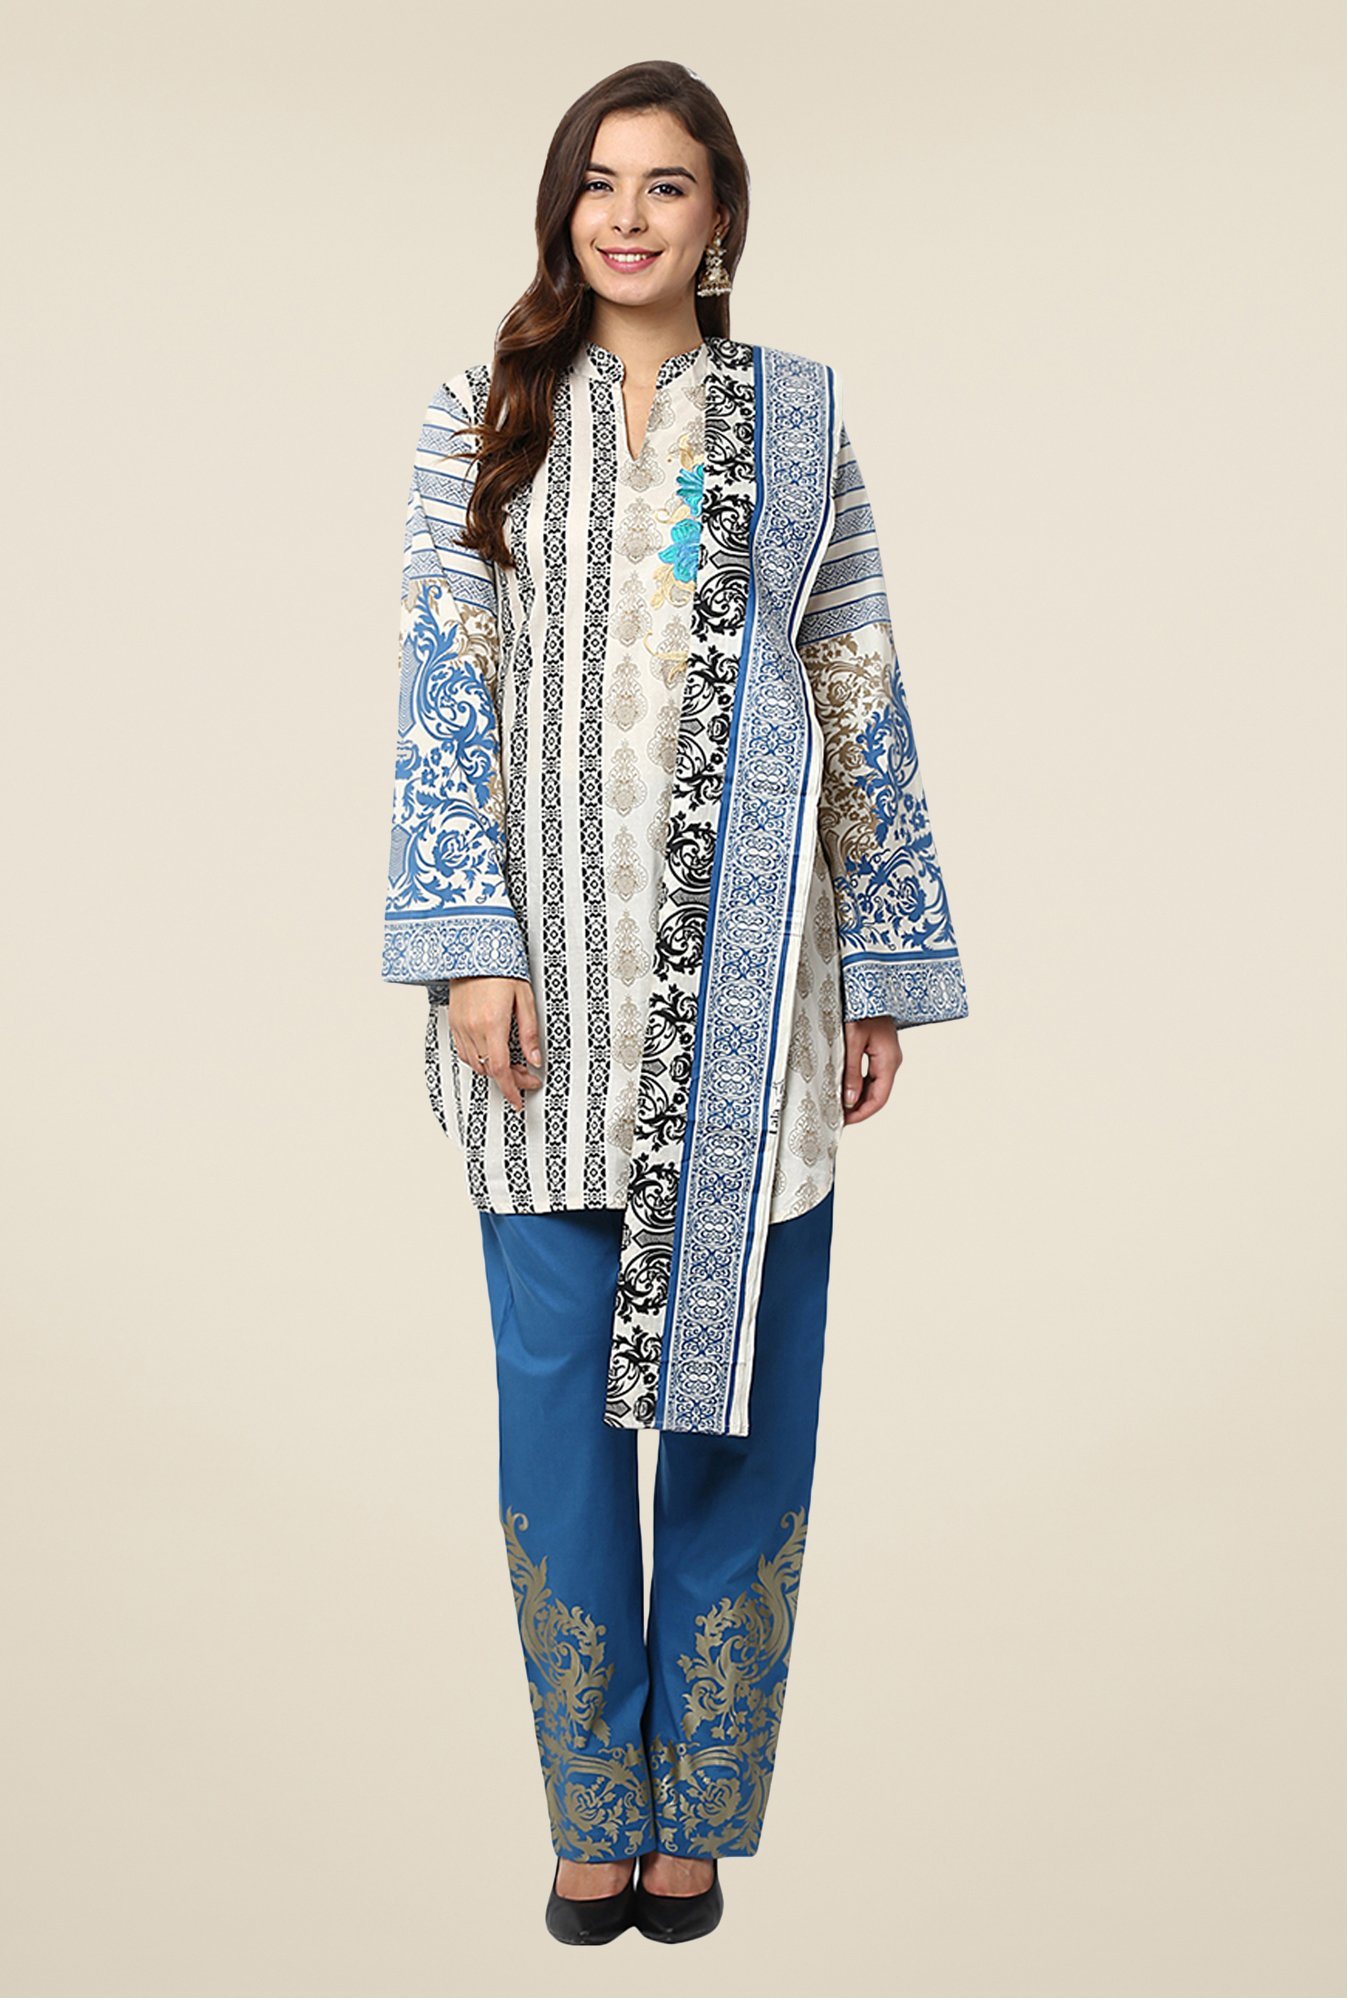 Yepme Beige & Blue Nazia Semi Stitched Pakistani Suit Set